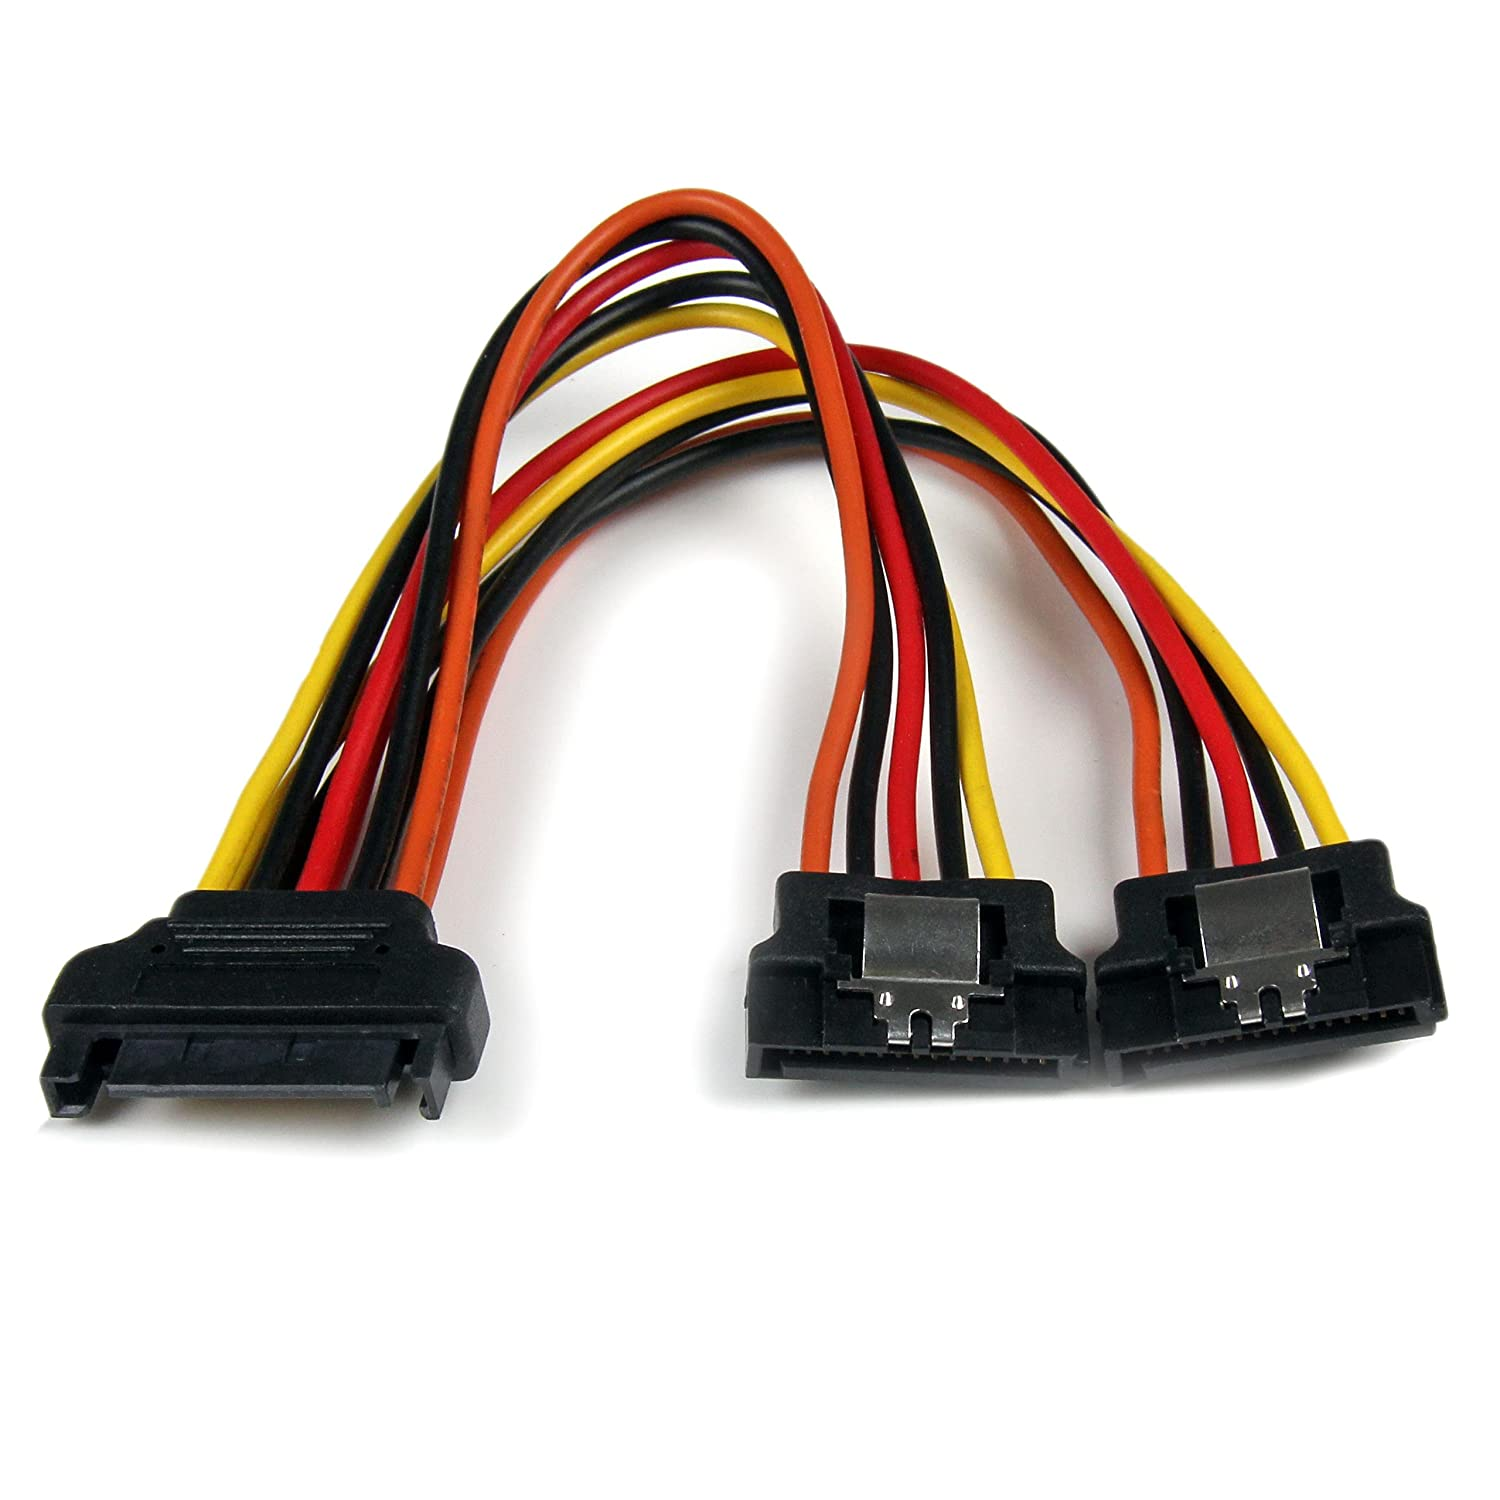 amazon com 6in latching sata power y splitter cable adapter m f